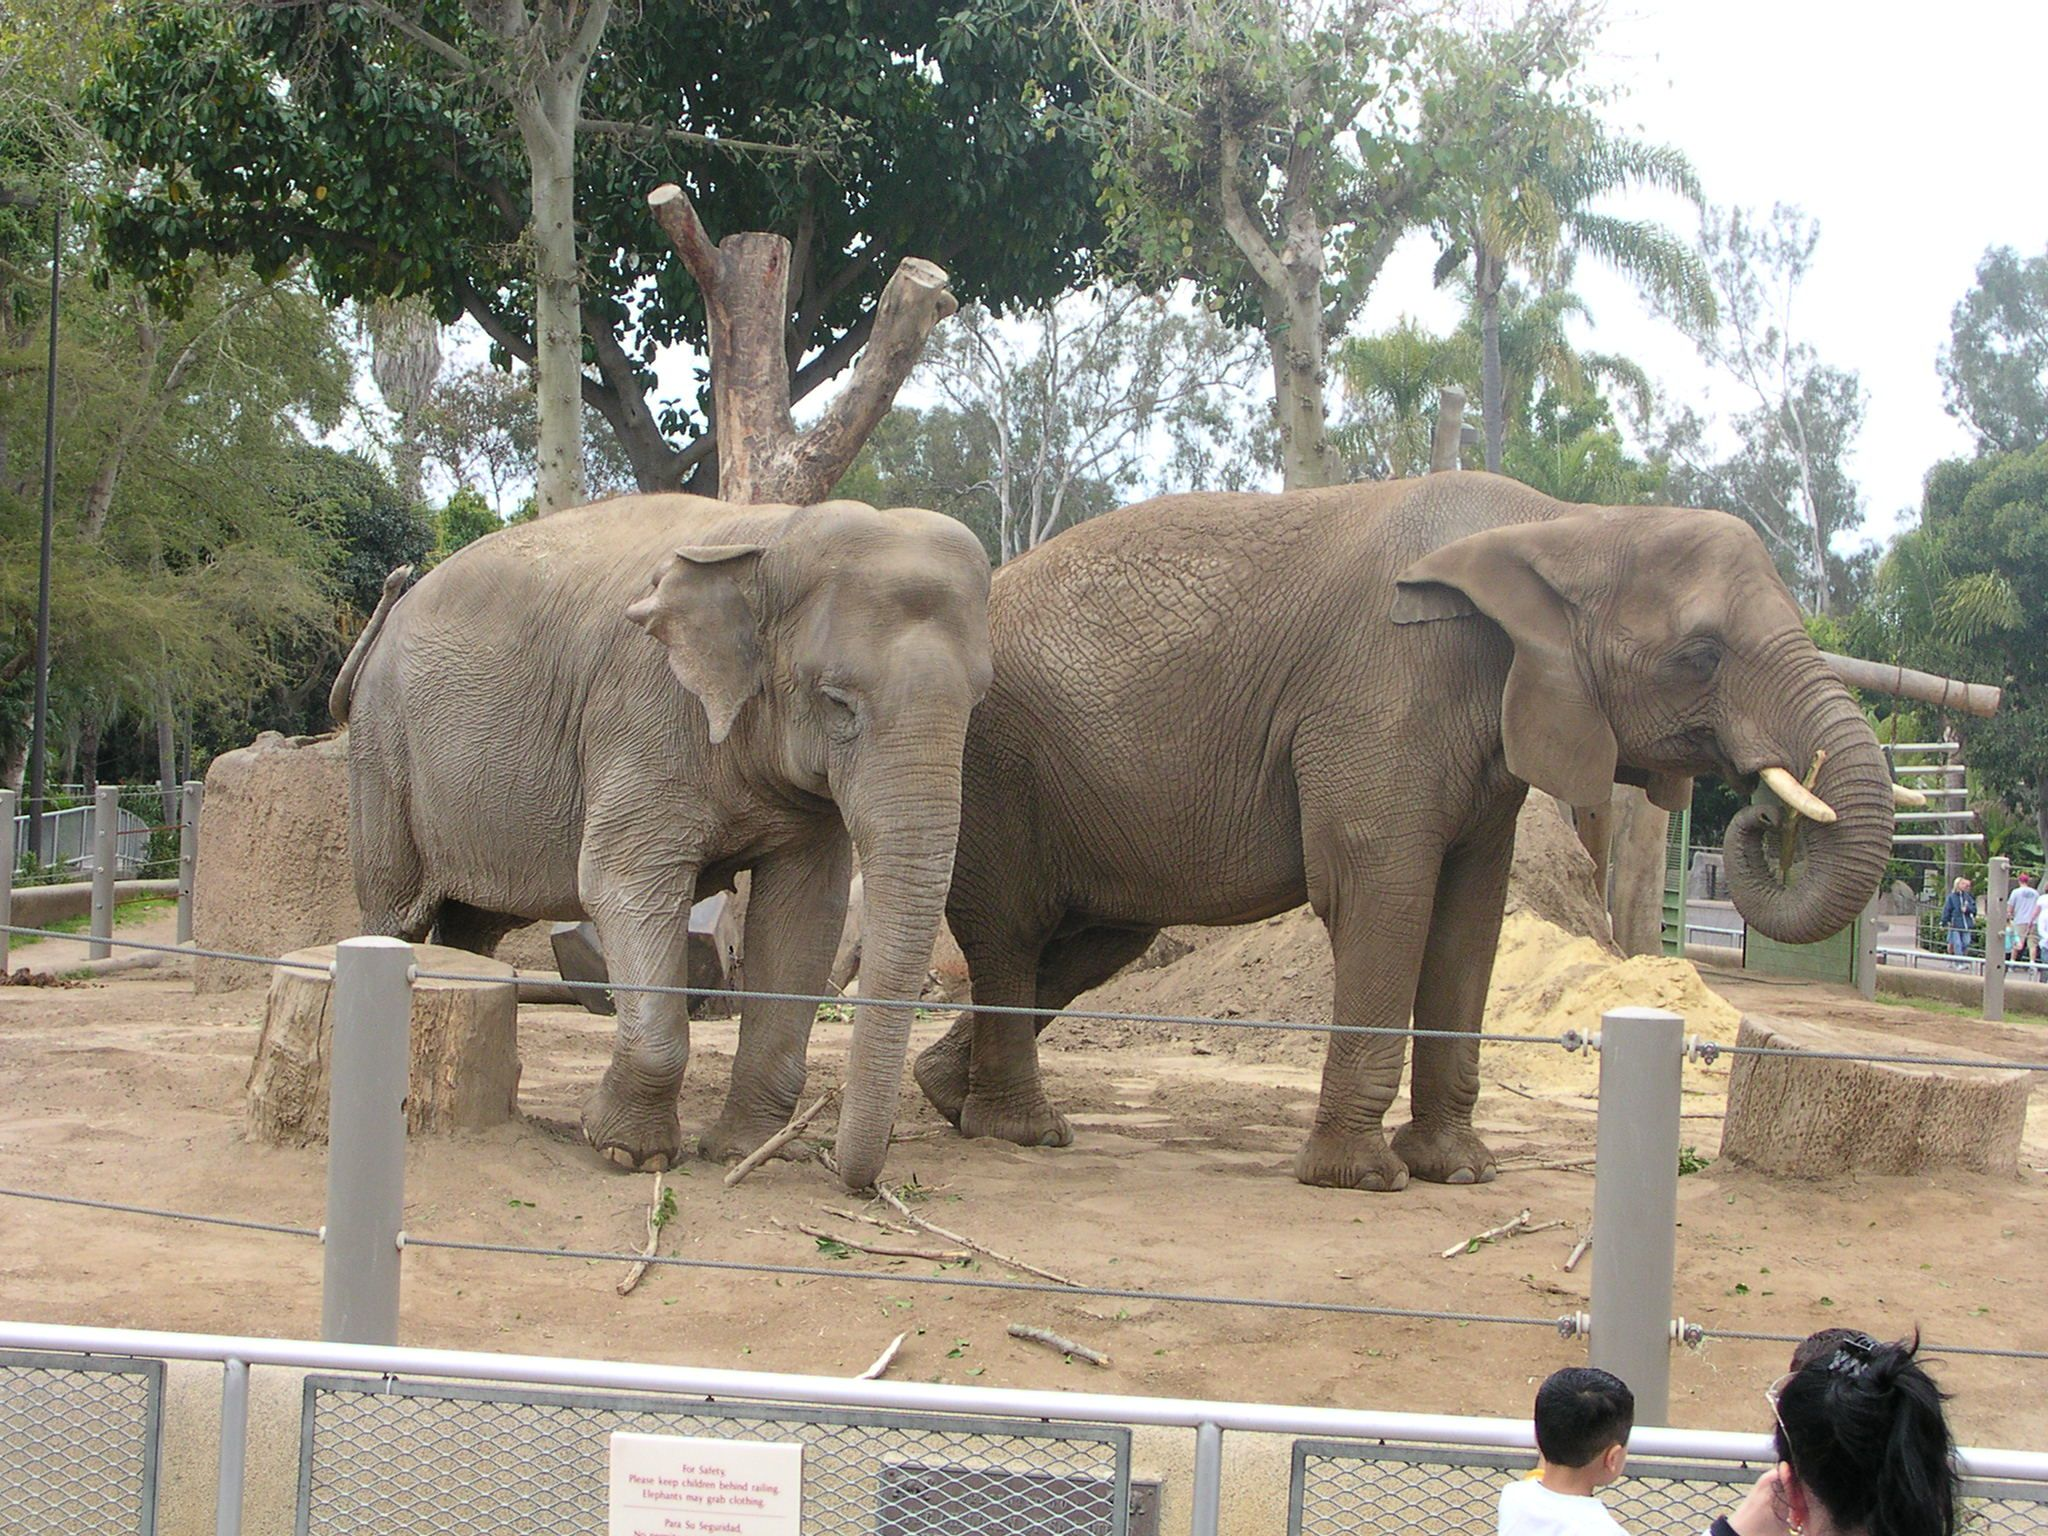 zoo elephants Zoo berlin is germany's oldest zoological garden and home to the world's largest variety of species almost 20,000 animals of around 1,400 species live in the 33-hectare zoo they include elephants, giraffes, gorillas, and germany's only giant pandas.